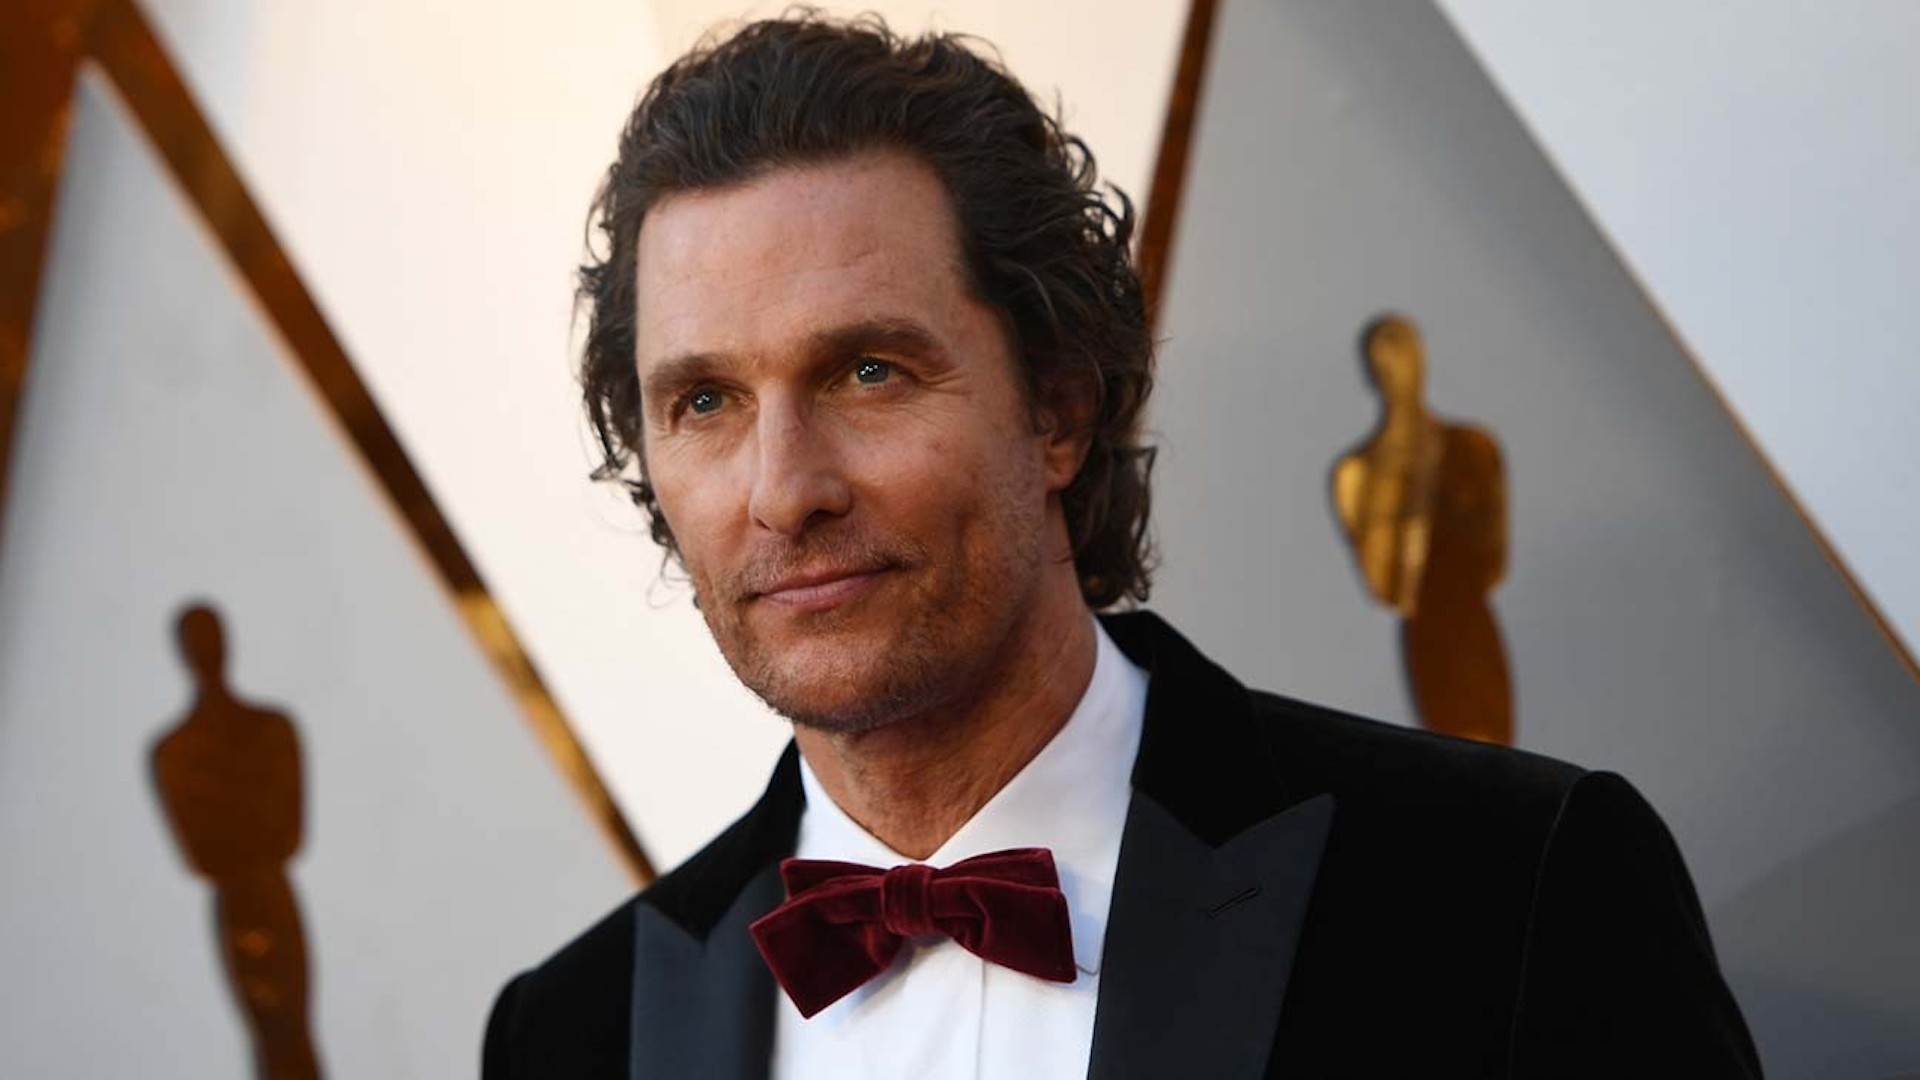 'A Time to Kill' Sequel With Matthew McConaughey in the Works at HBO